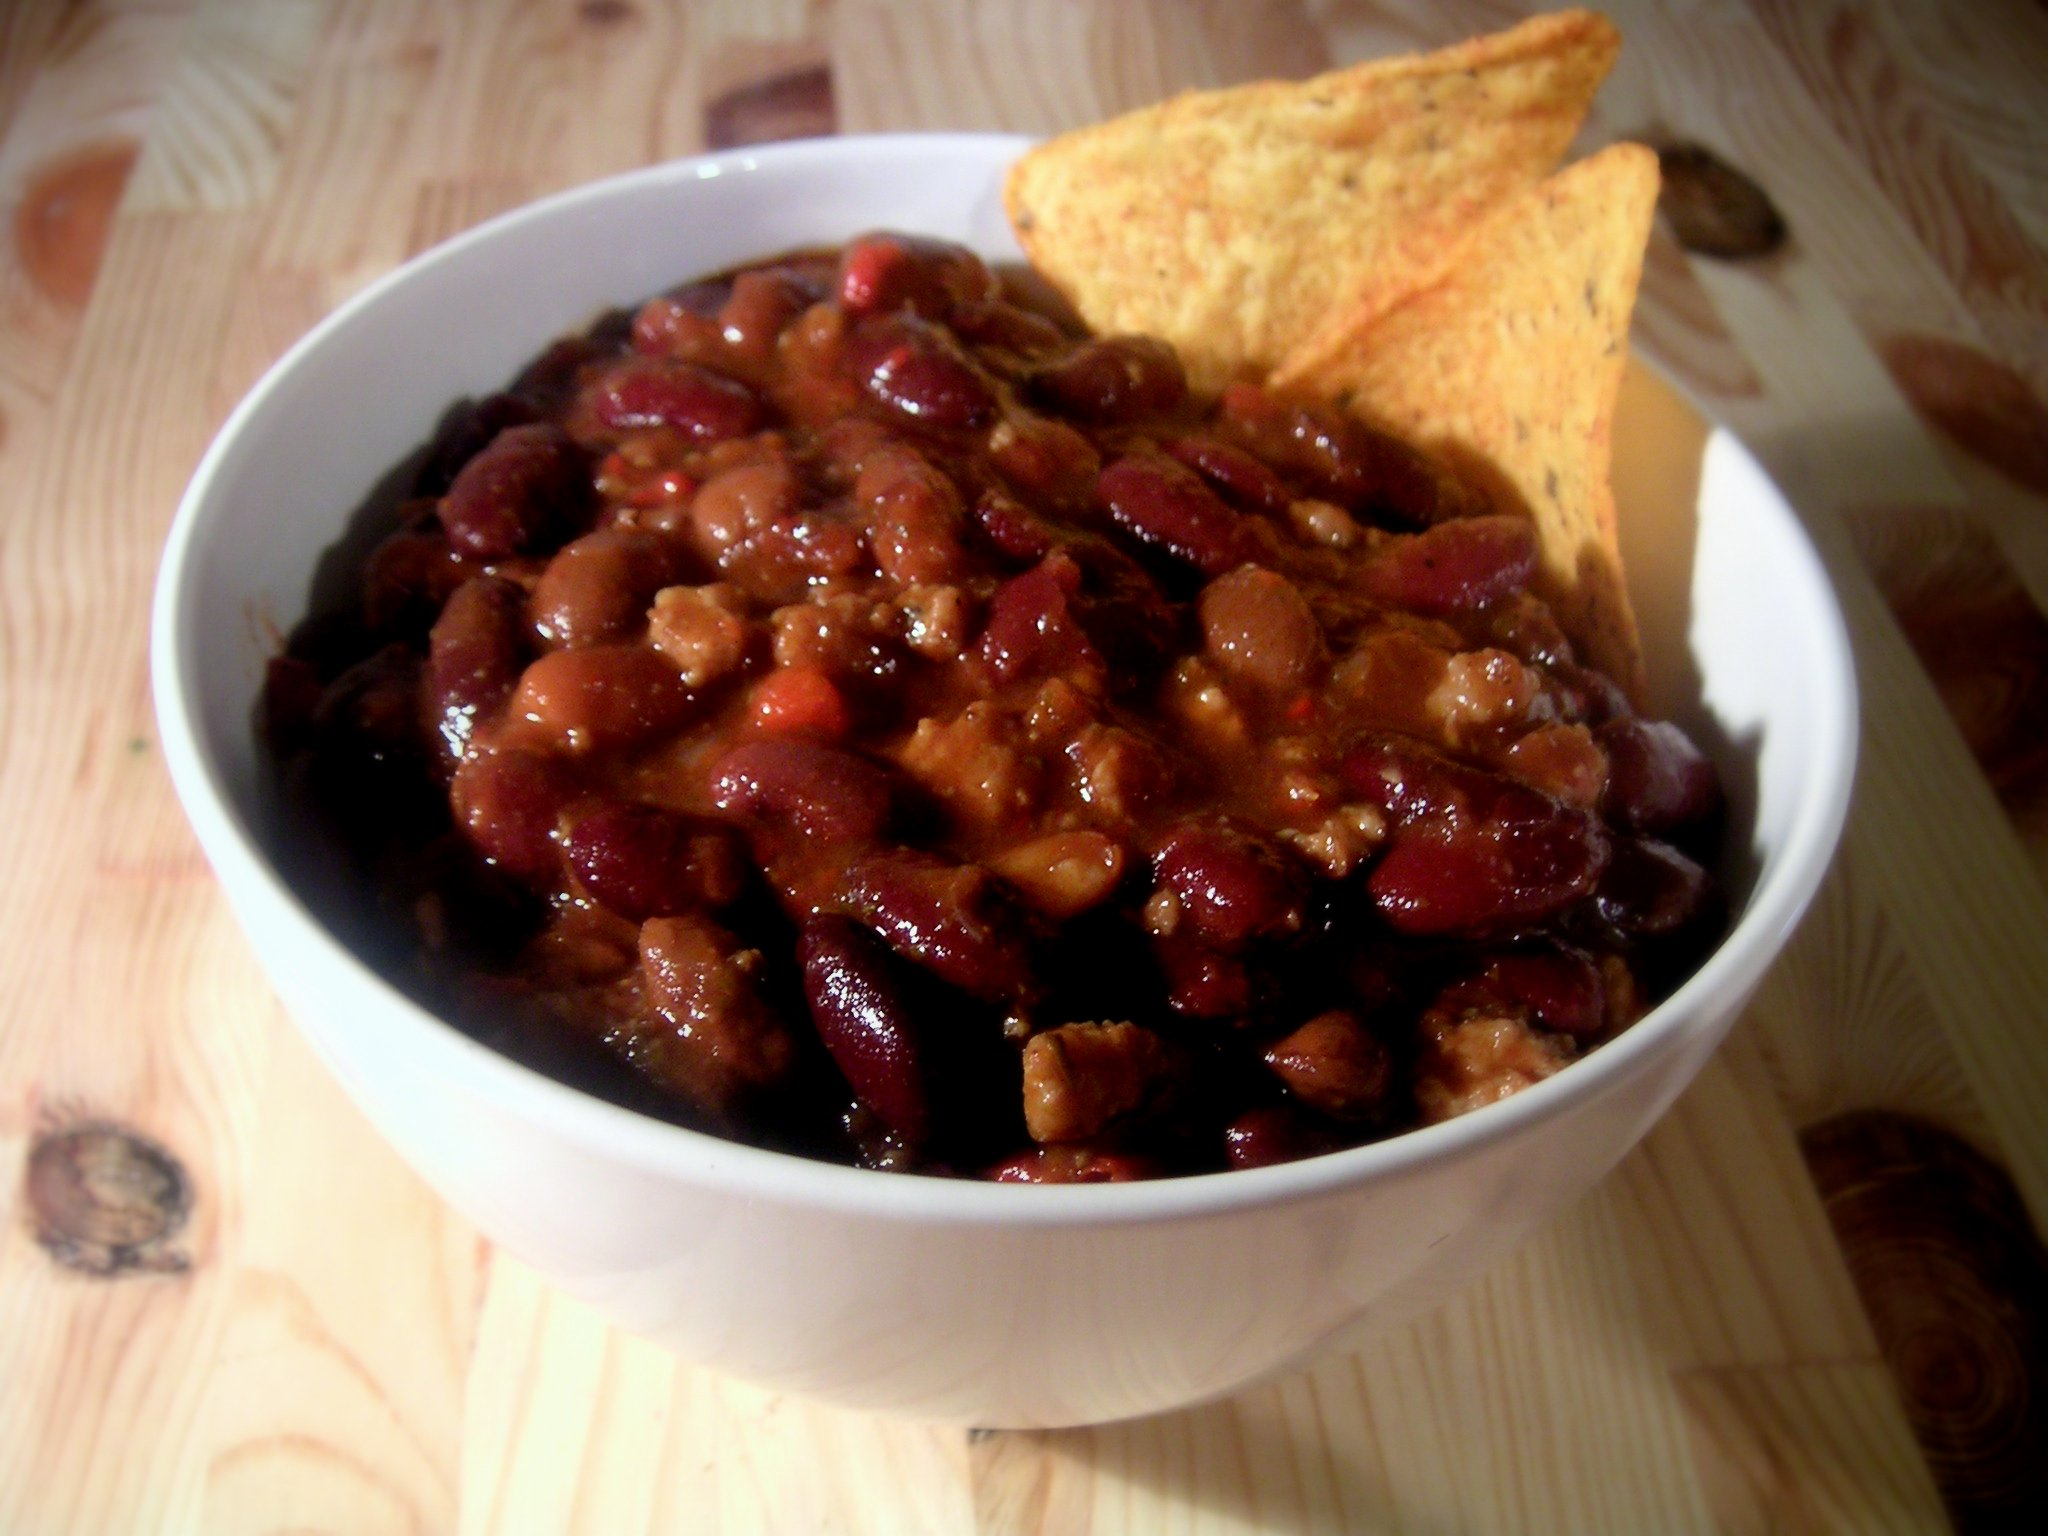 https://upload.wikimedia.org/wikipedia/commons/5/50/Bowl_of_chili.jpg